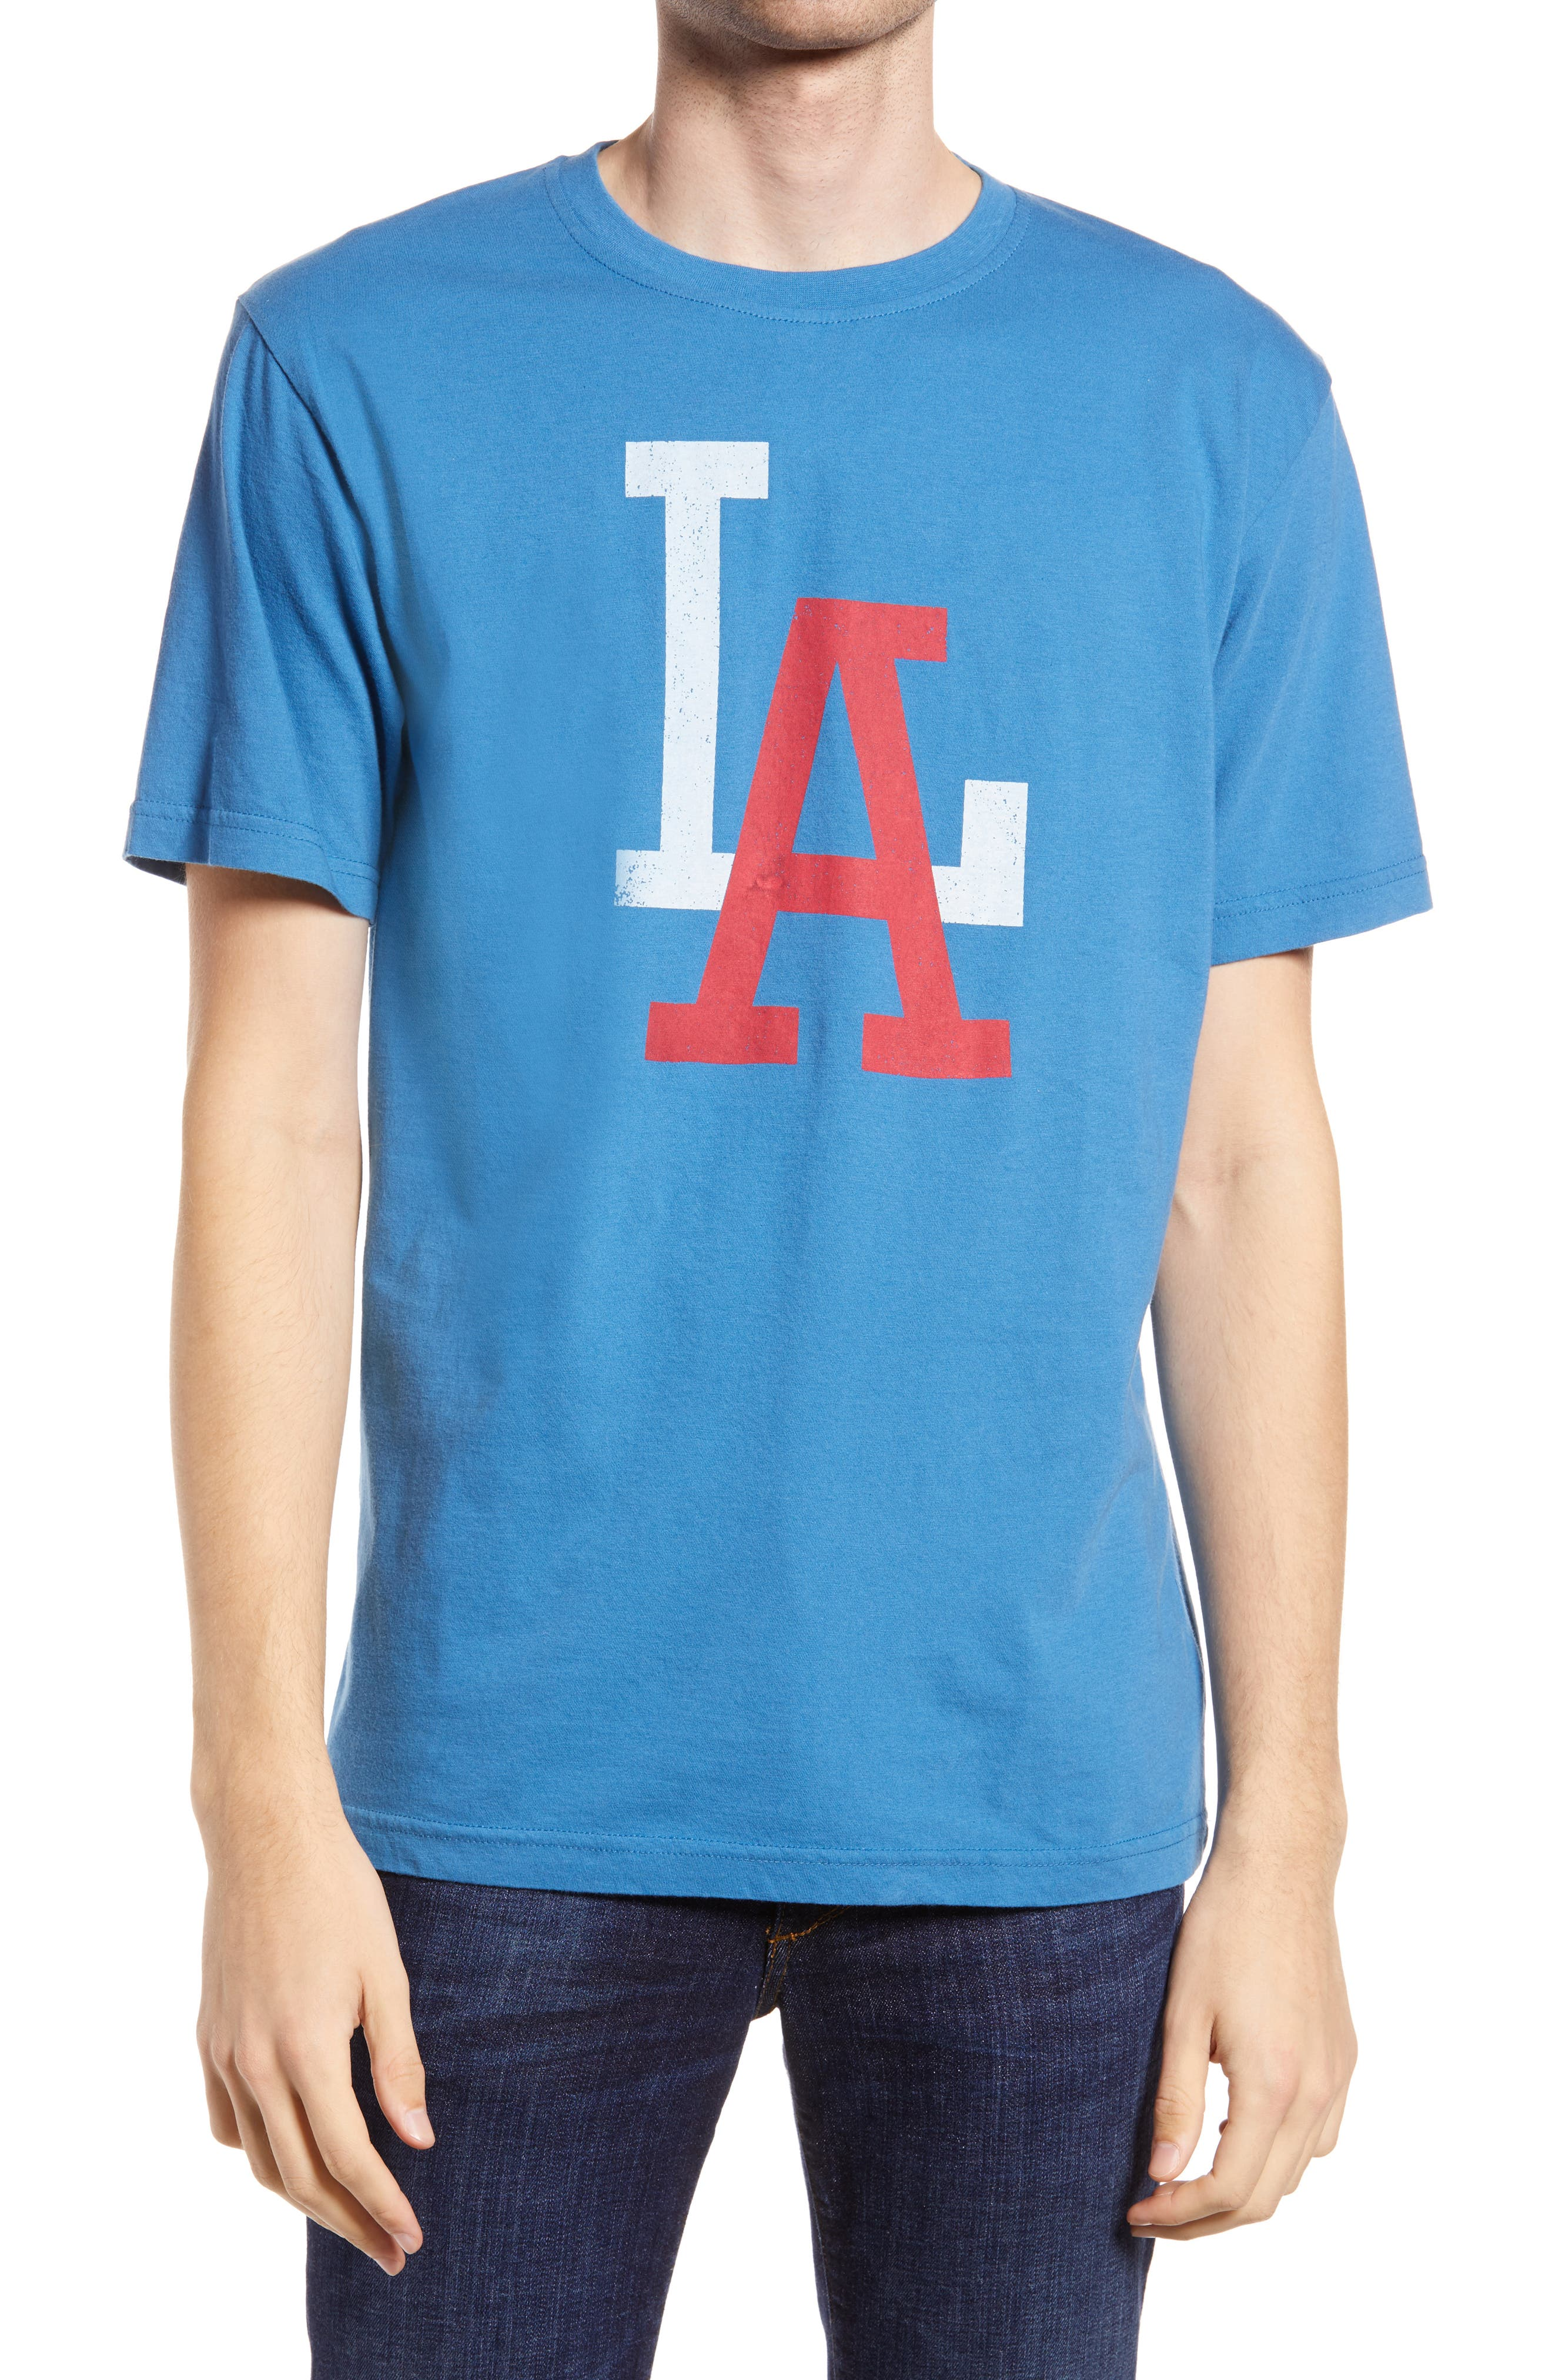 Archive Brass Tacks Los Angeles Angels Men's Graphic Tee